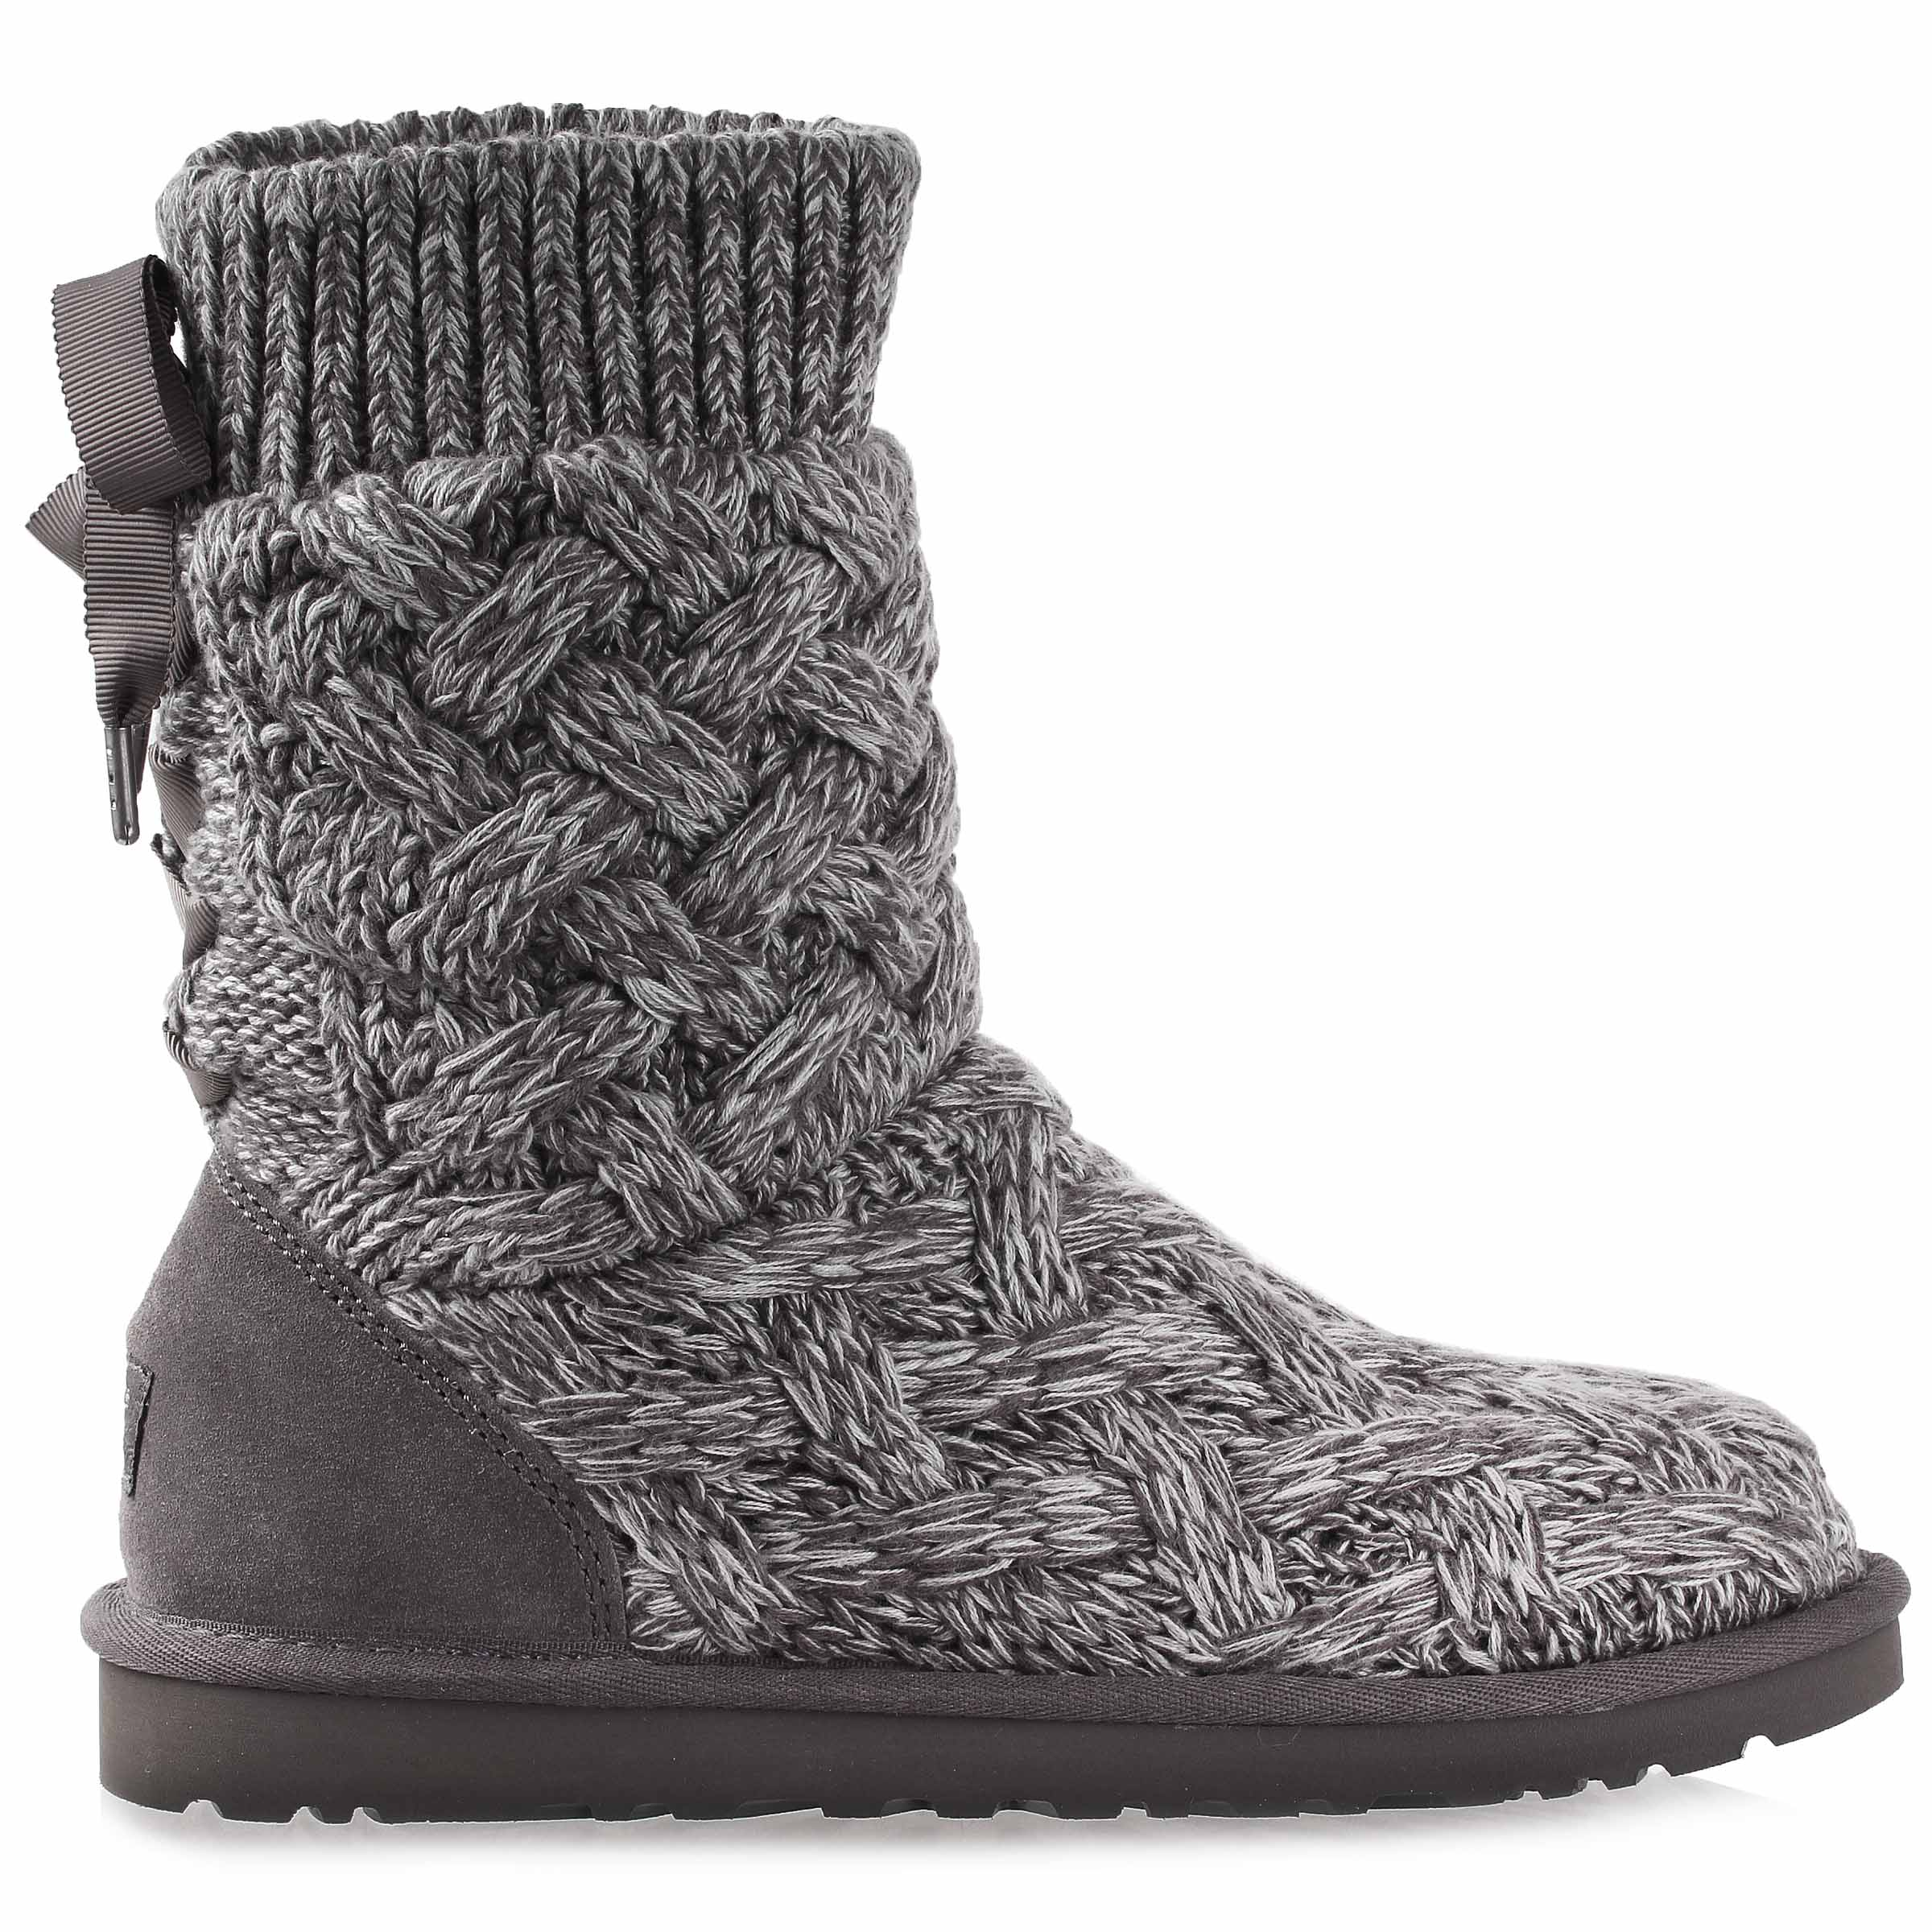 93c1430bb24 Details about UGG Australia Womens Isla Boot Shoes 1008840W Grey